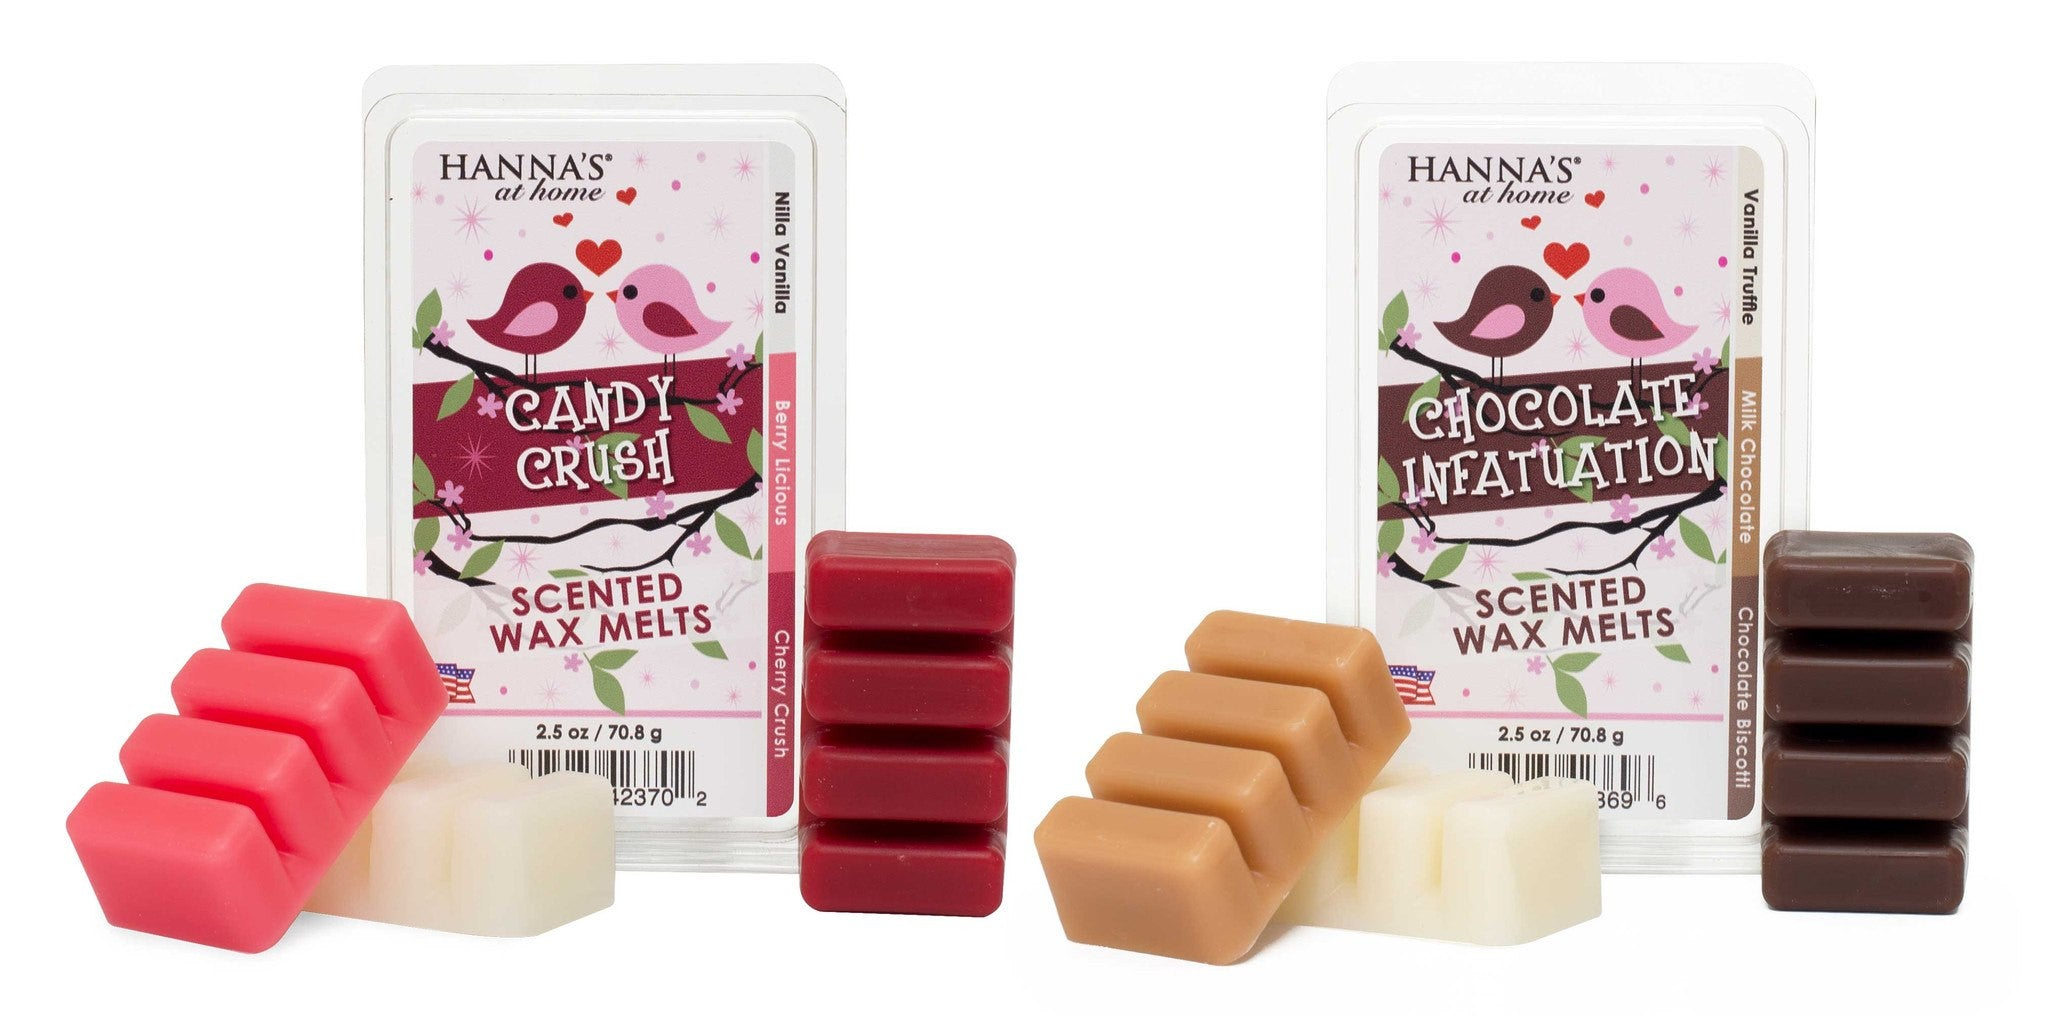 Valentine's Triple Pour Candy Crush Scented Wax Melts - Candlemart.com - 2